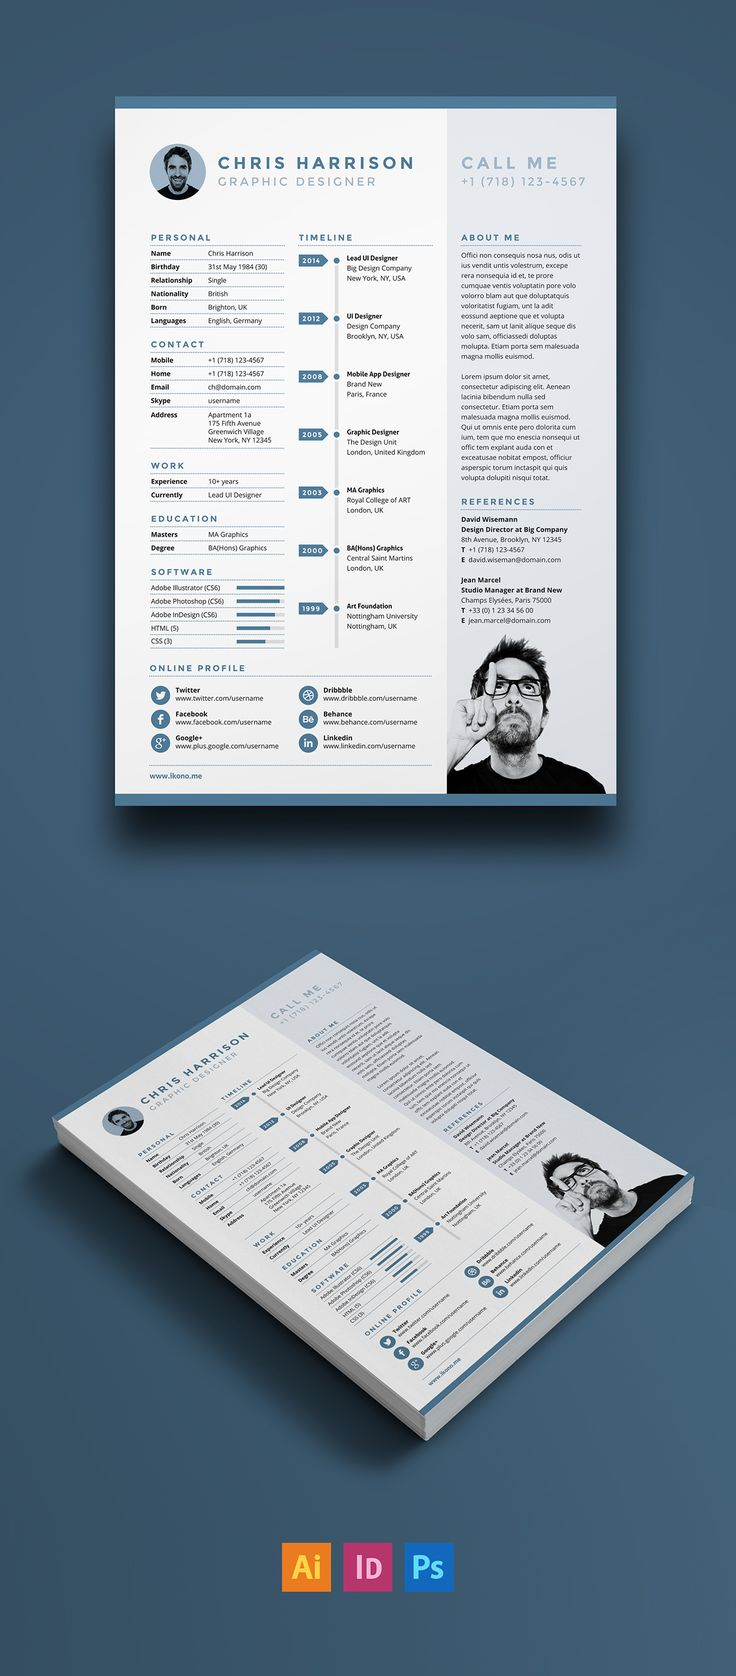 Free Resume Template for Adobe Illustrator Indesign